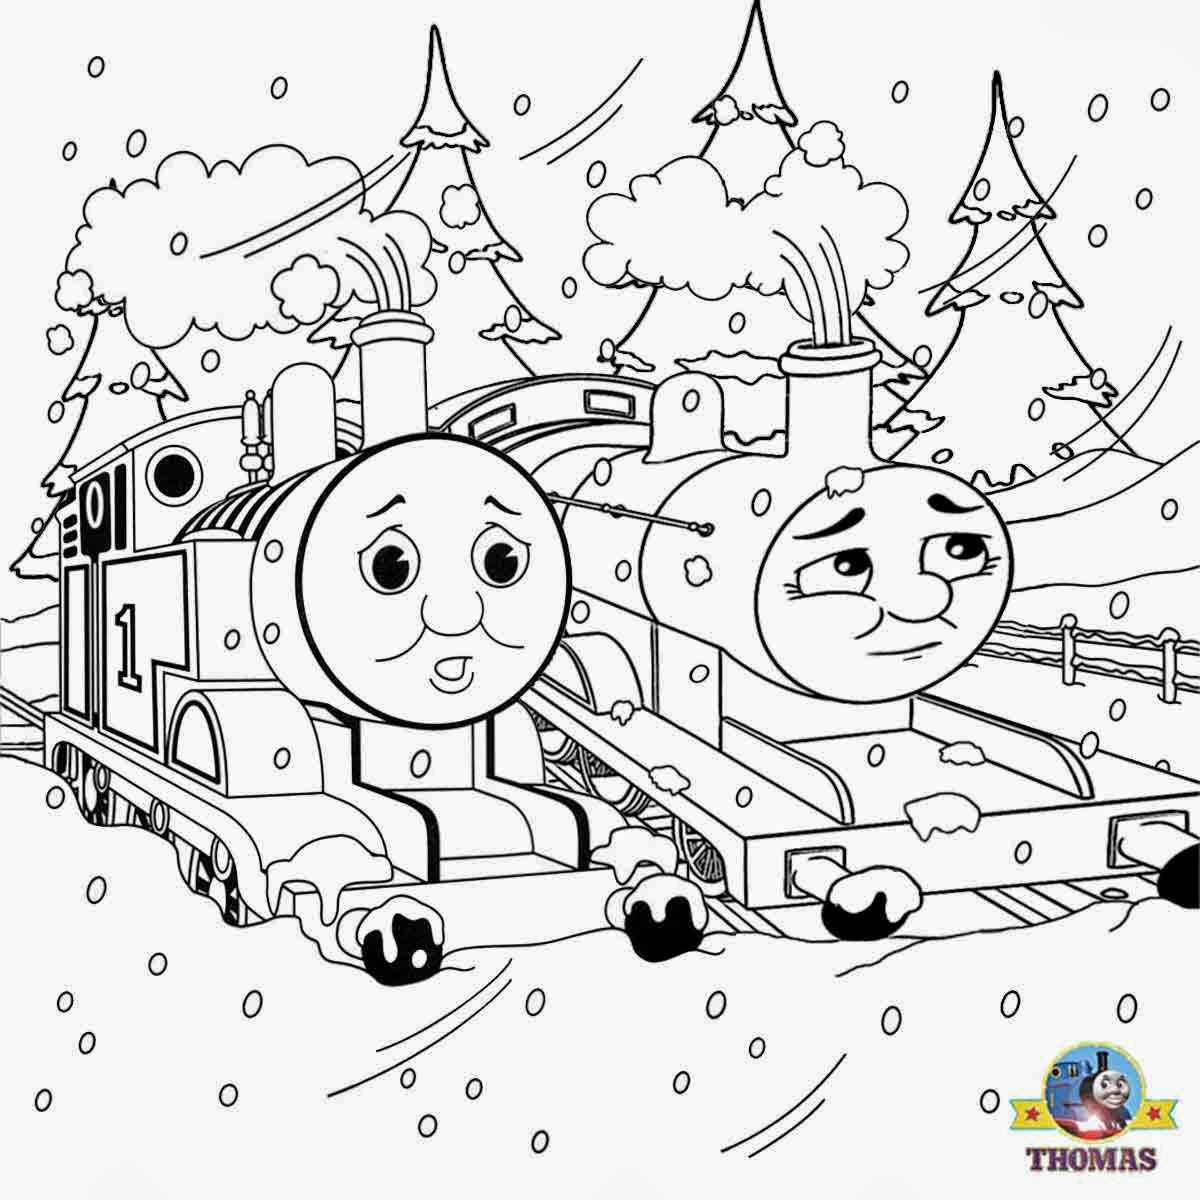 - Thomas The Train Coloring Pages Printable For Free - Coloring